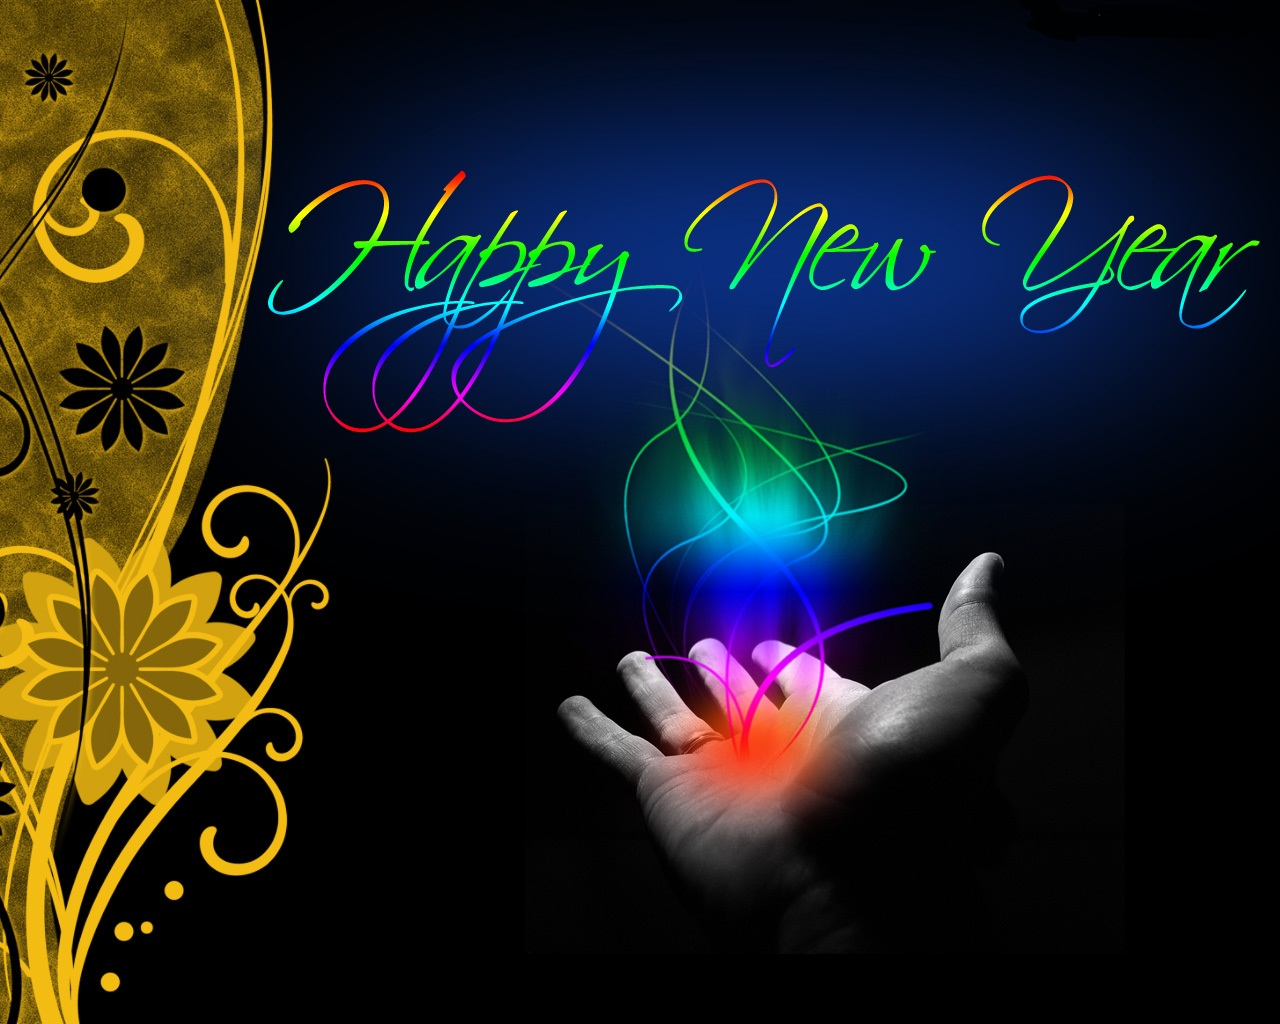 latest hd mobile wallpapers happy new year wallpapper for